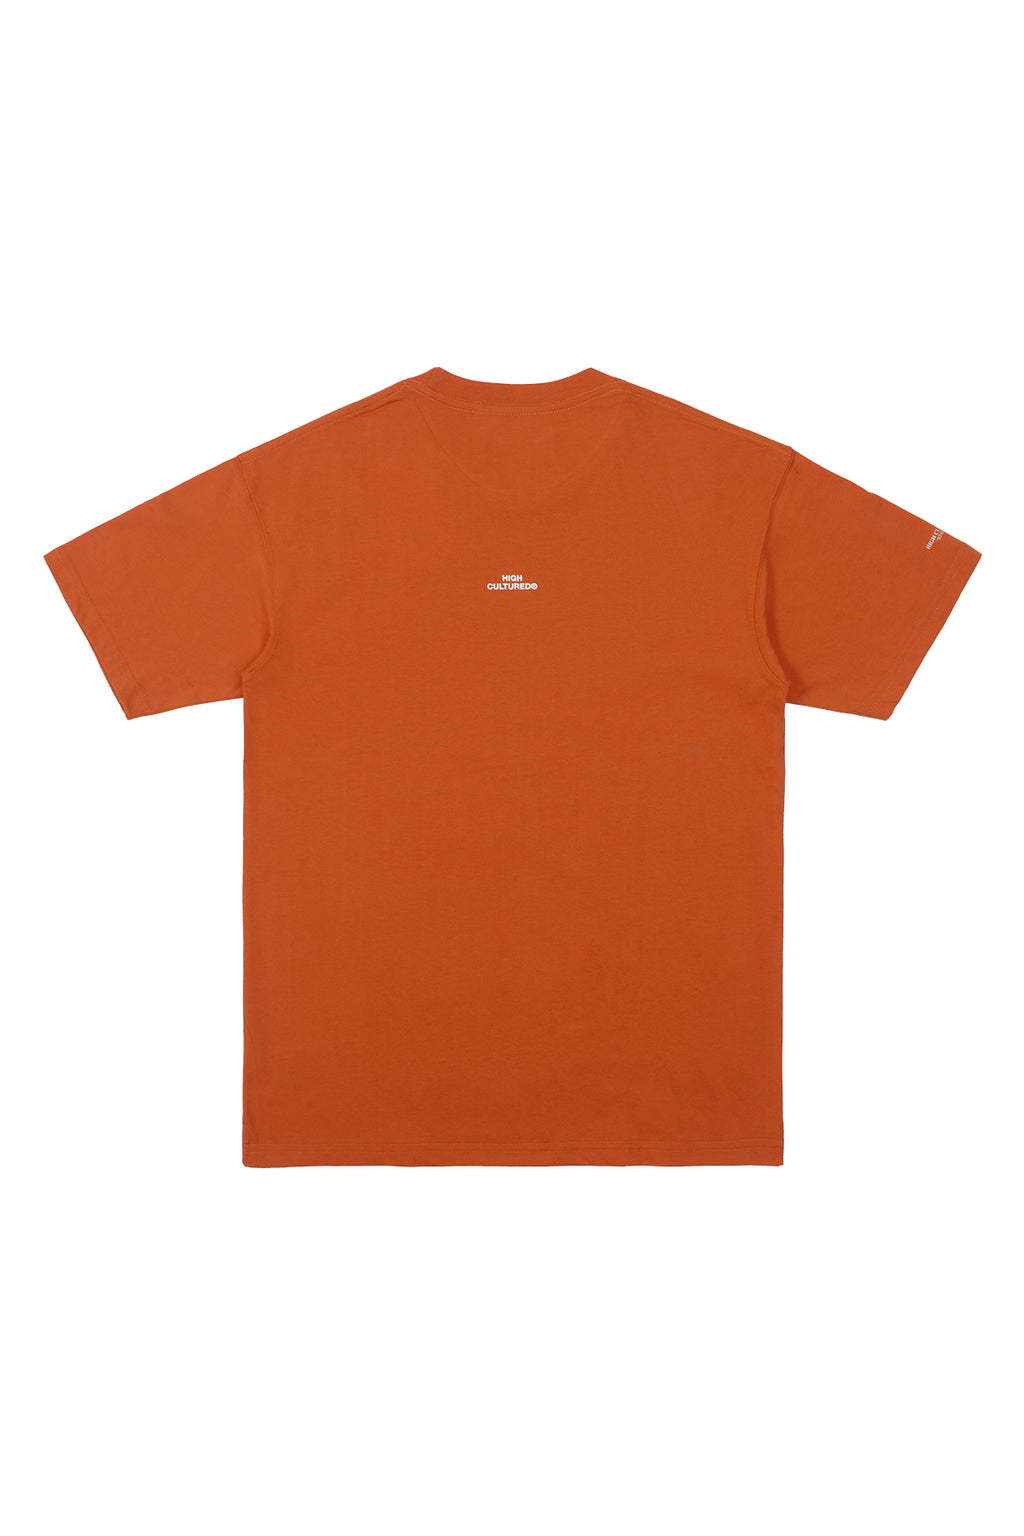 LAZY CLUB MOUSE TEE | ORANGE - 782